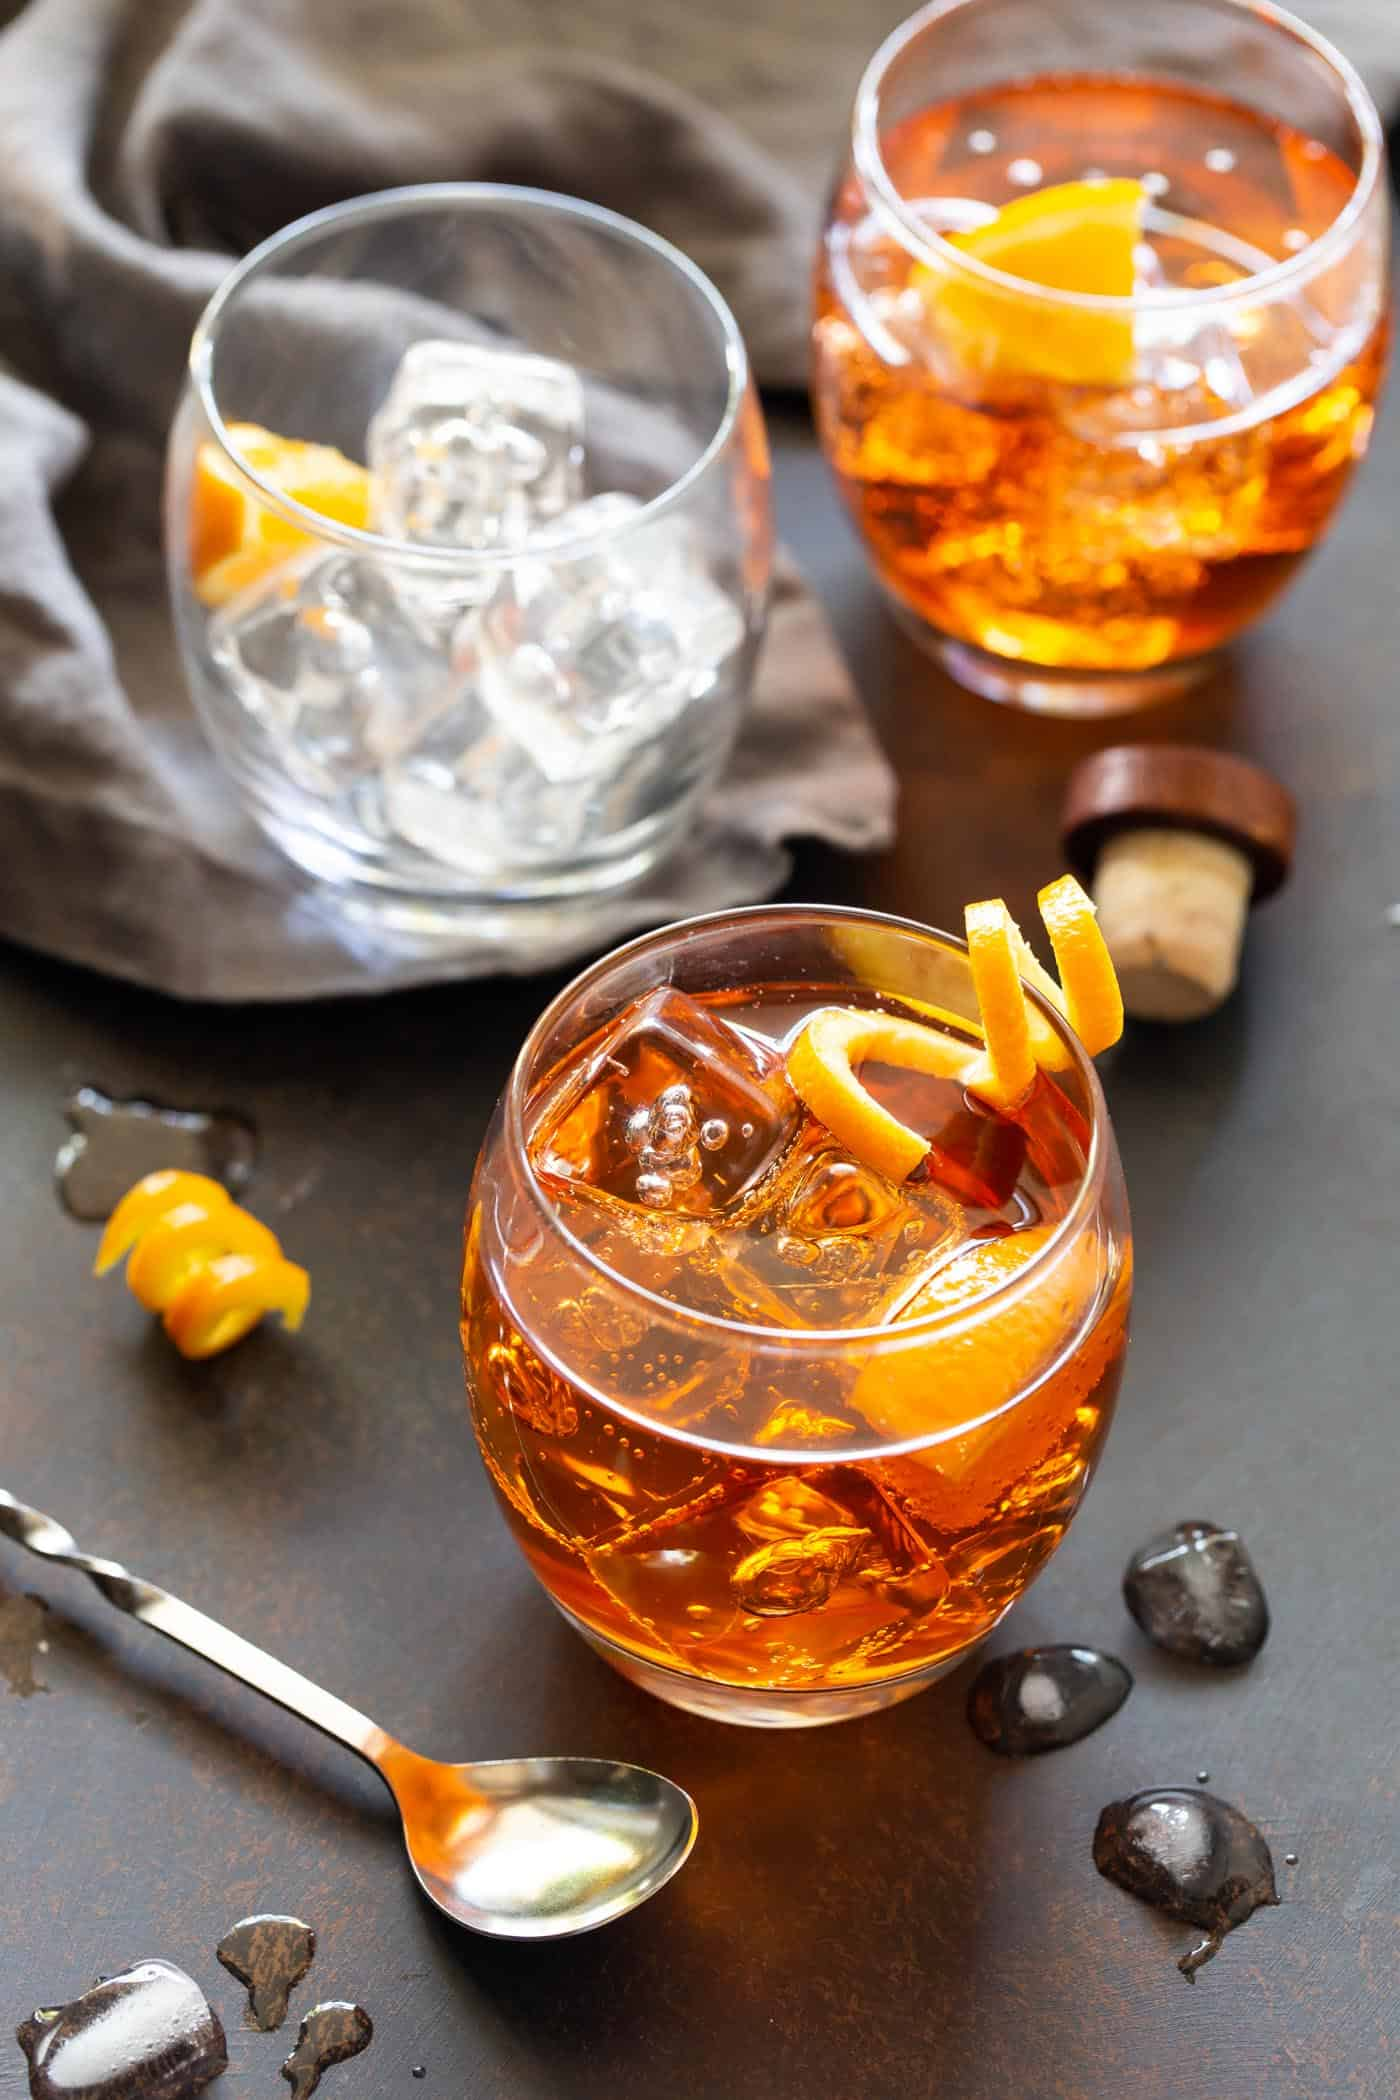 Aperol and Gin